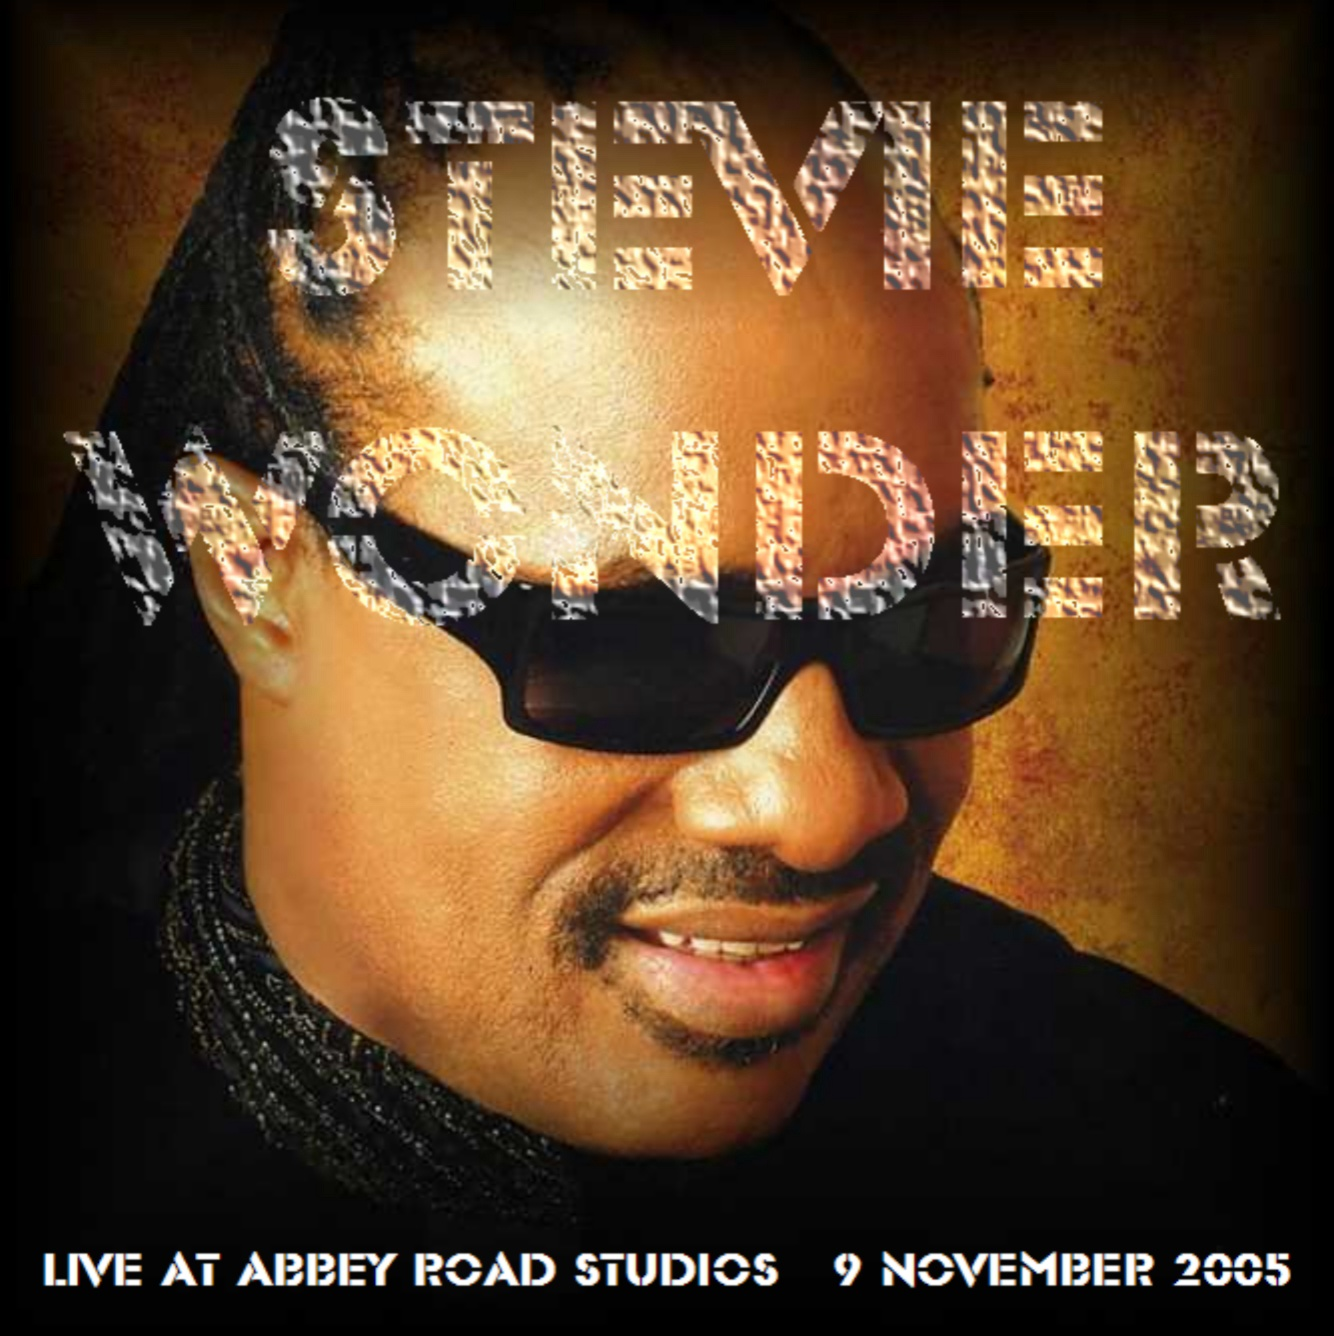 stevie wonder 2005 11 09 abbey road studios london